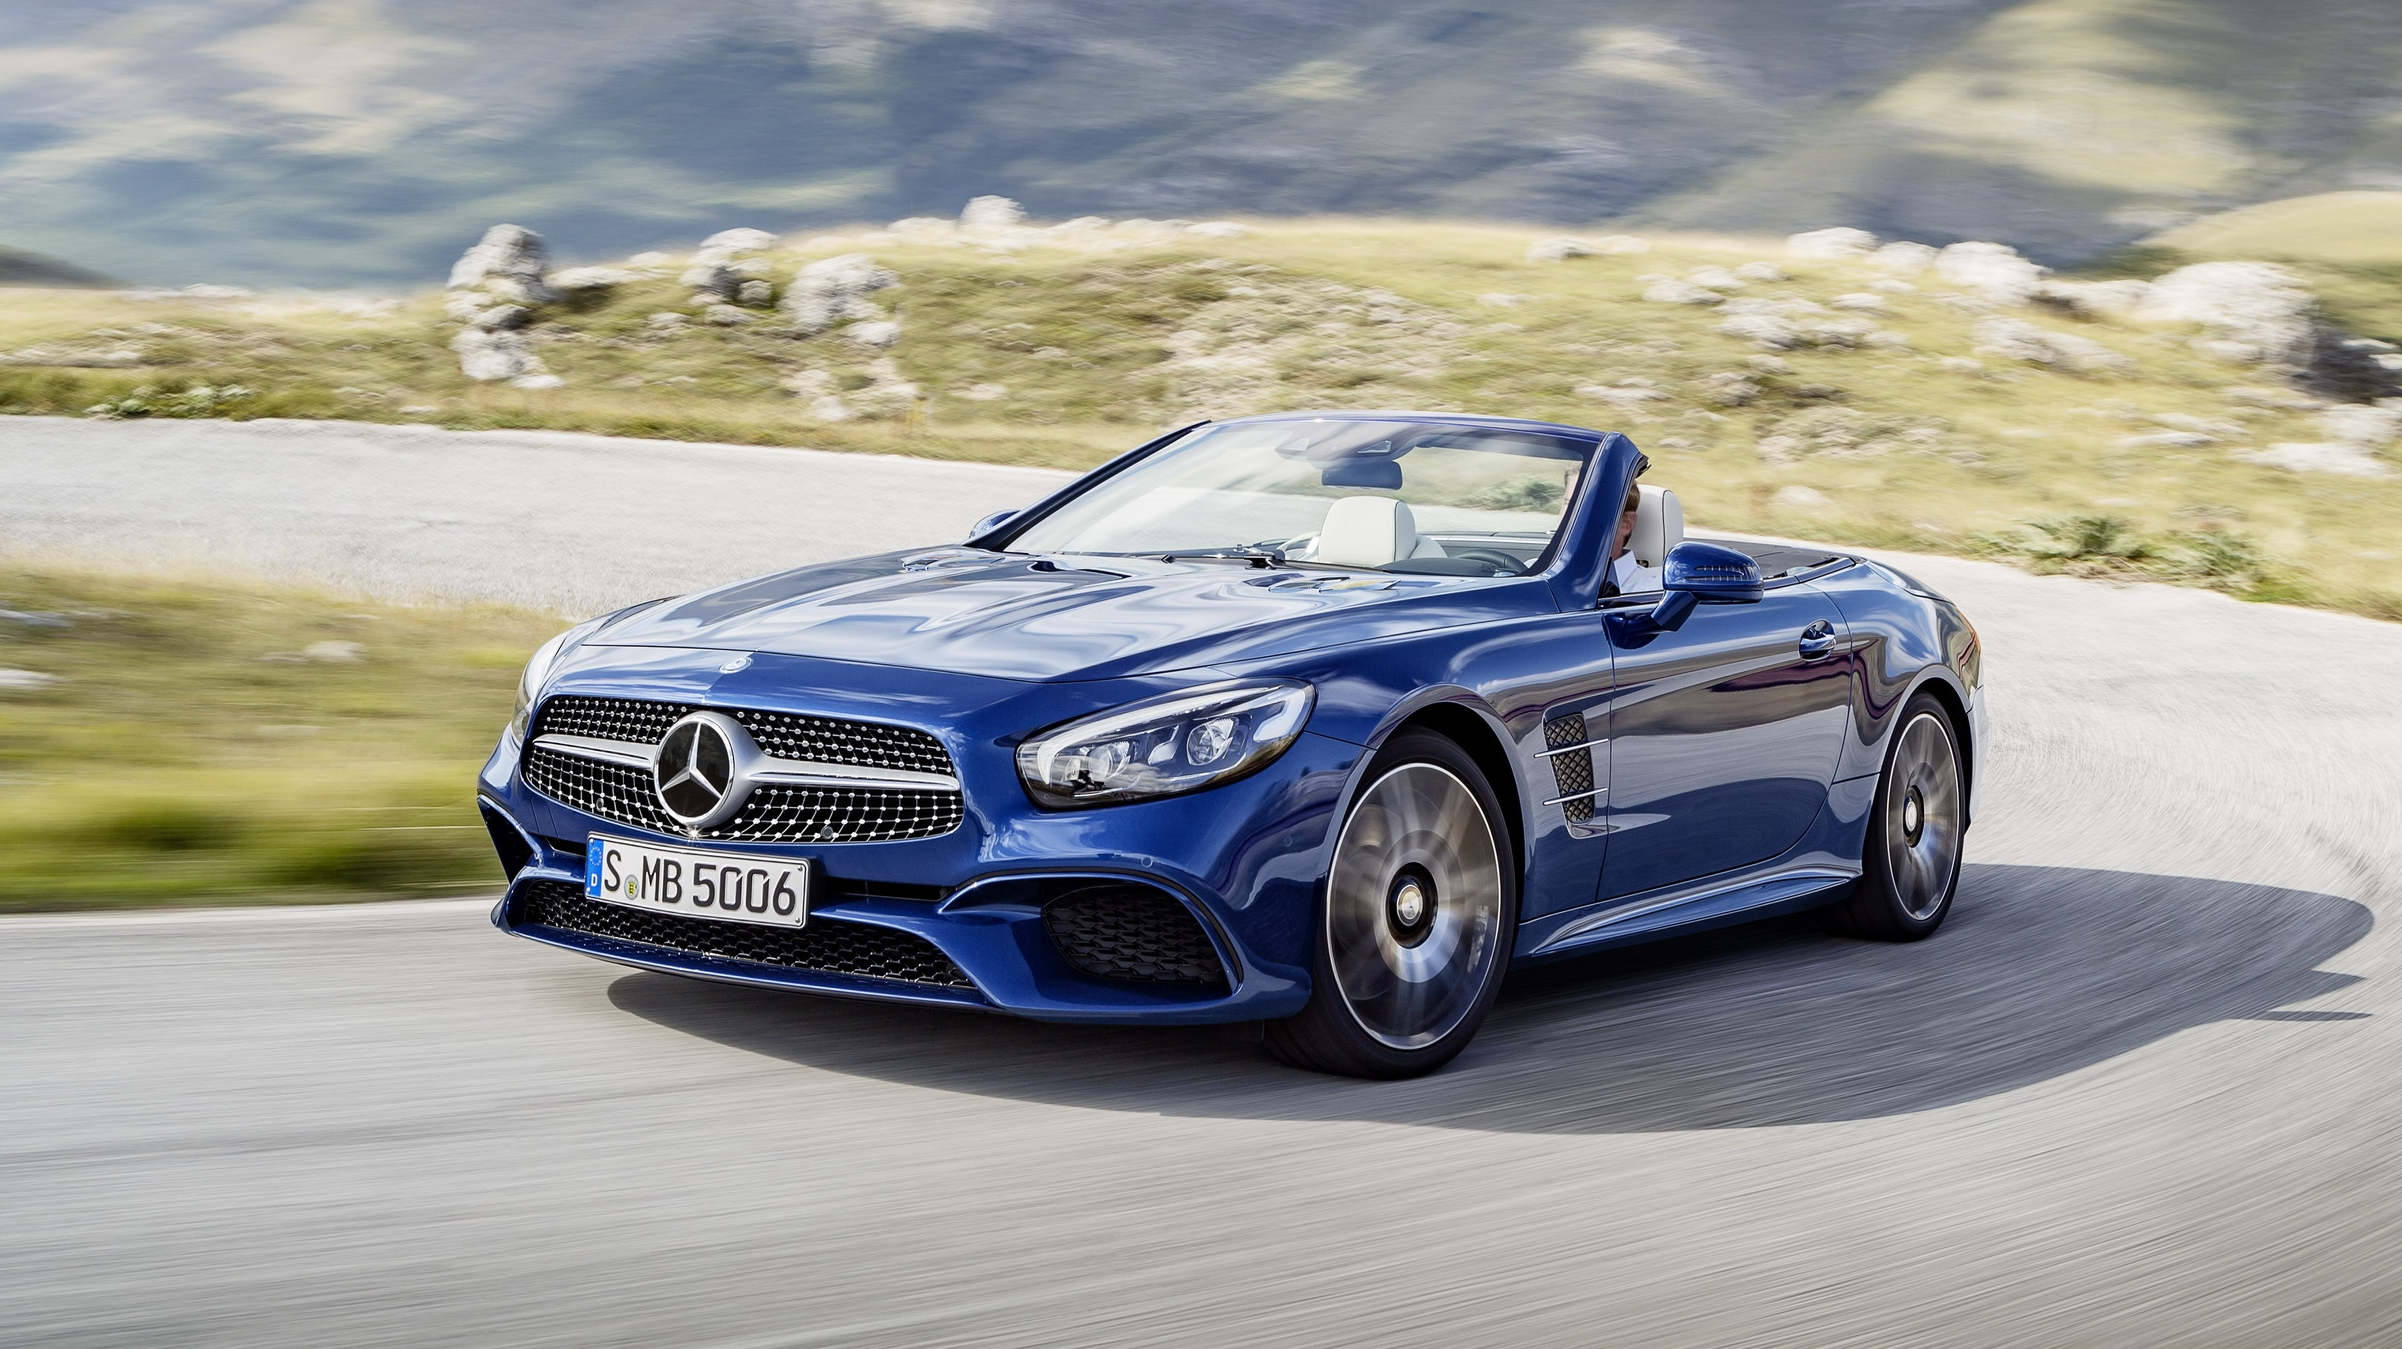 Mercedes-Benz SL-klasse AMG III (R231) Restyling 2015 - now Roadster #5